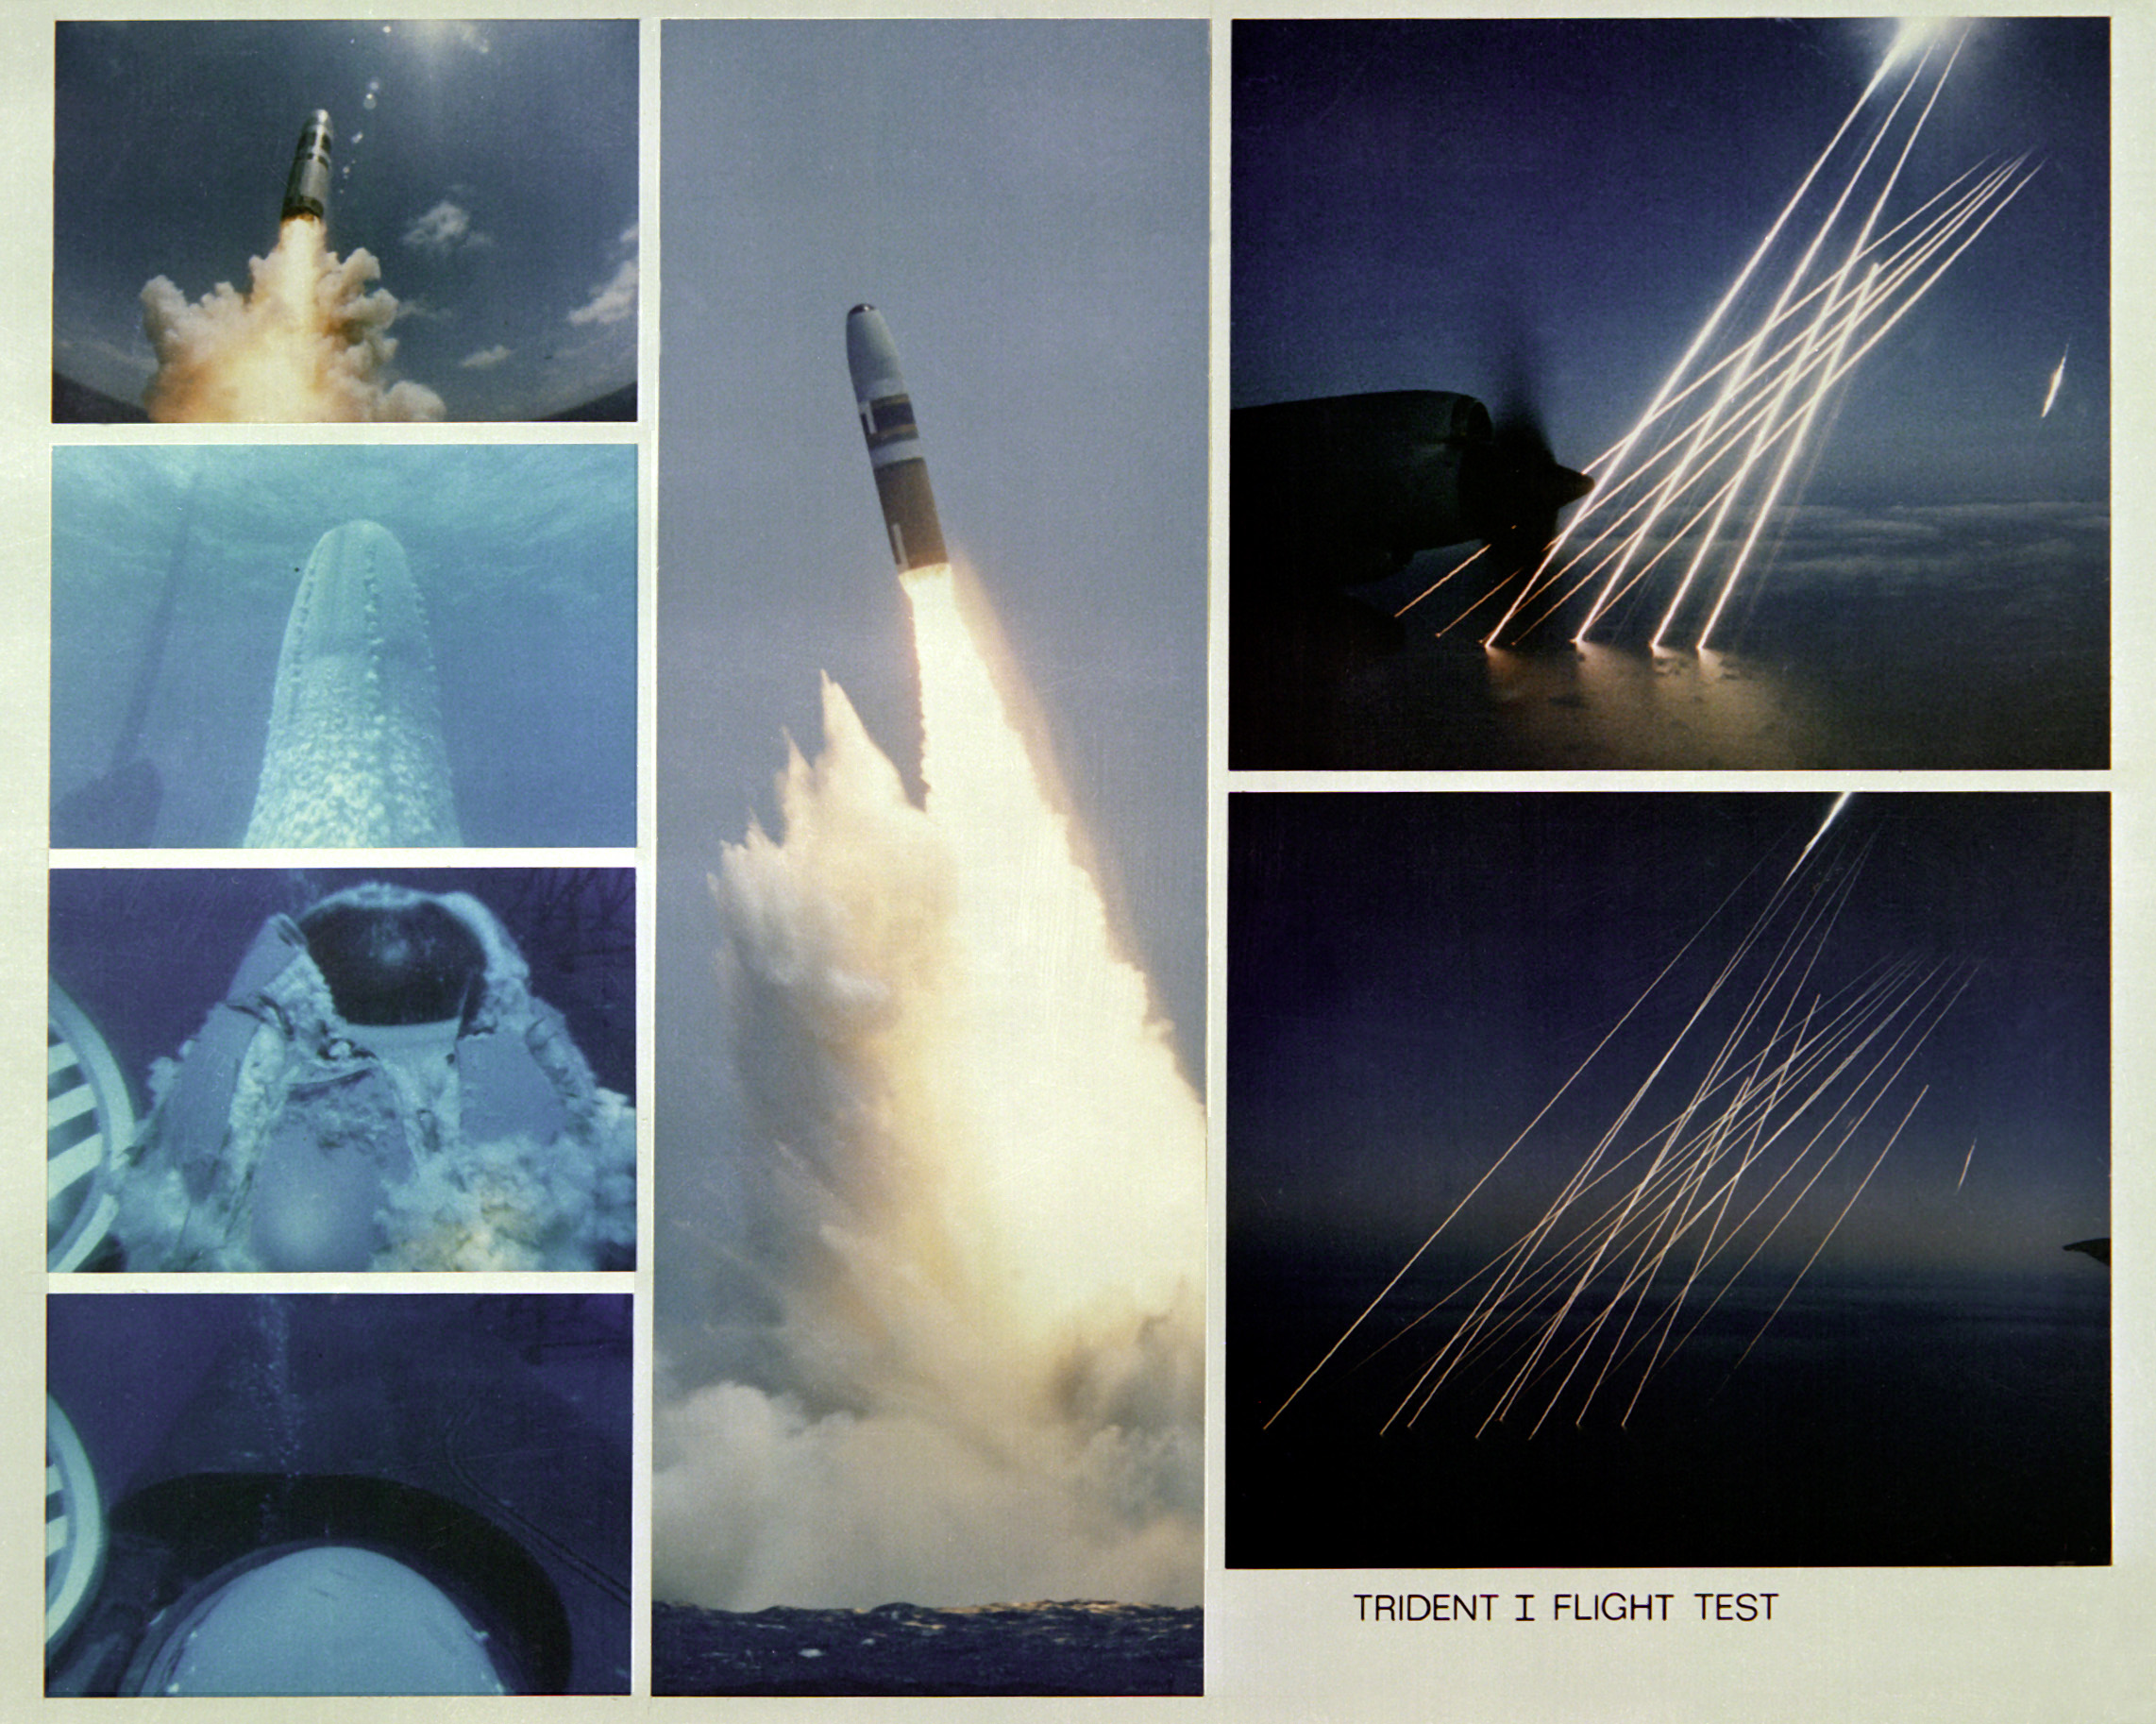 Montage of the launch of a Trident C4 SLBM and the paths of its reentry vehicles.